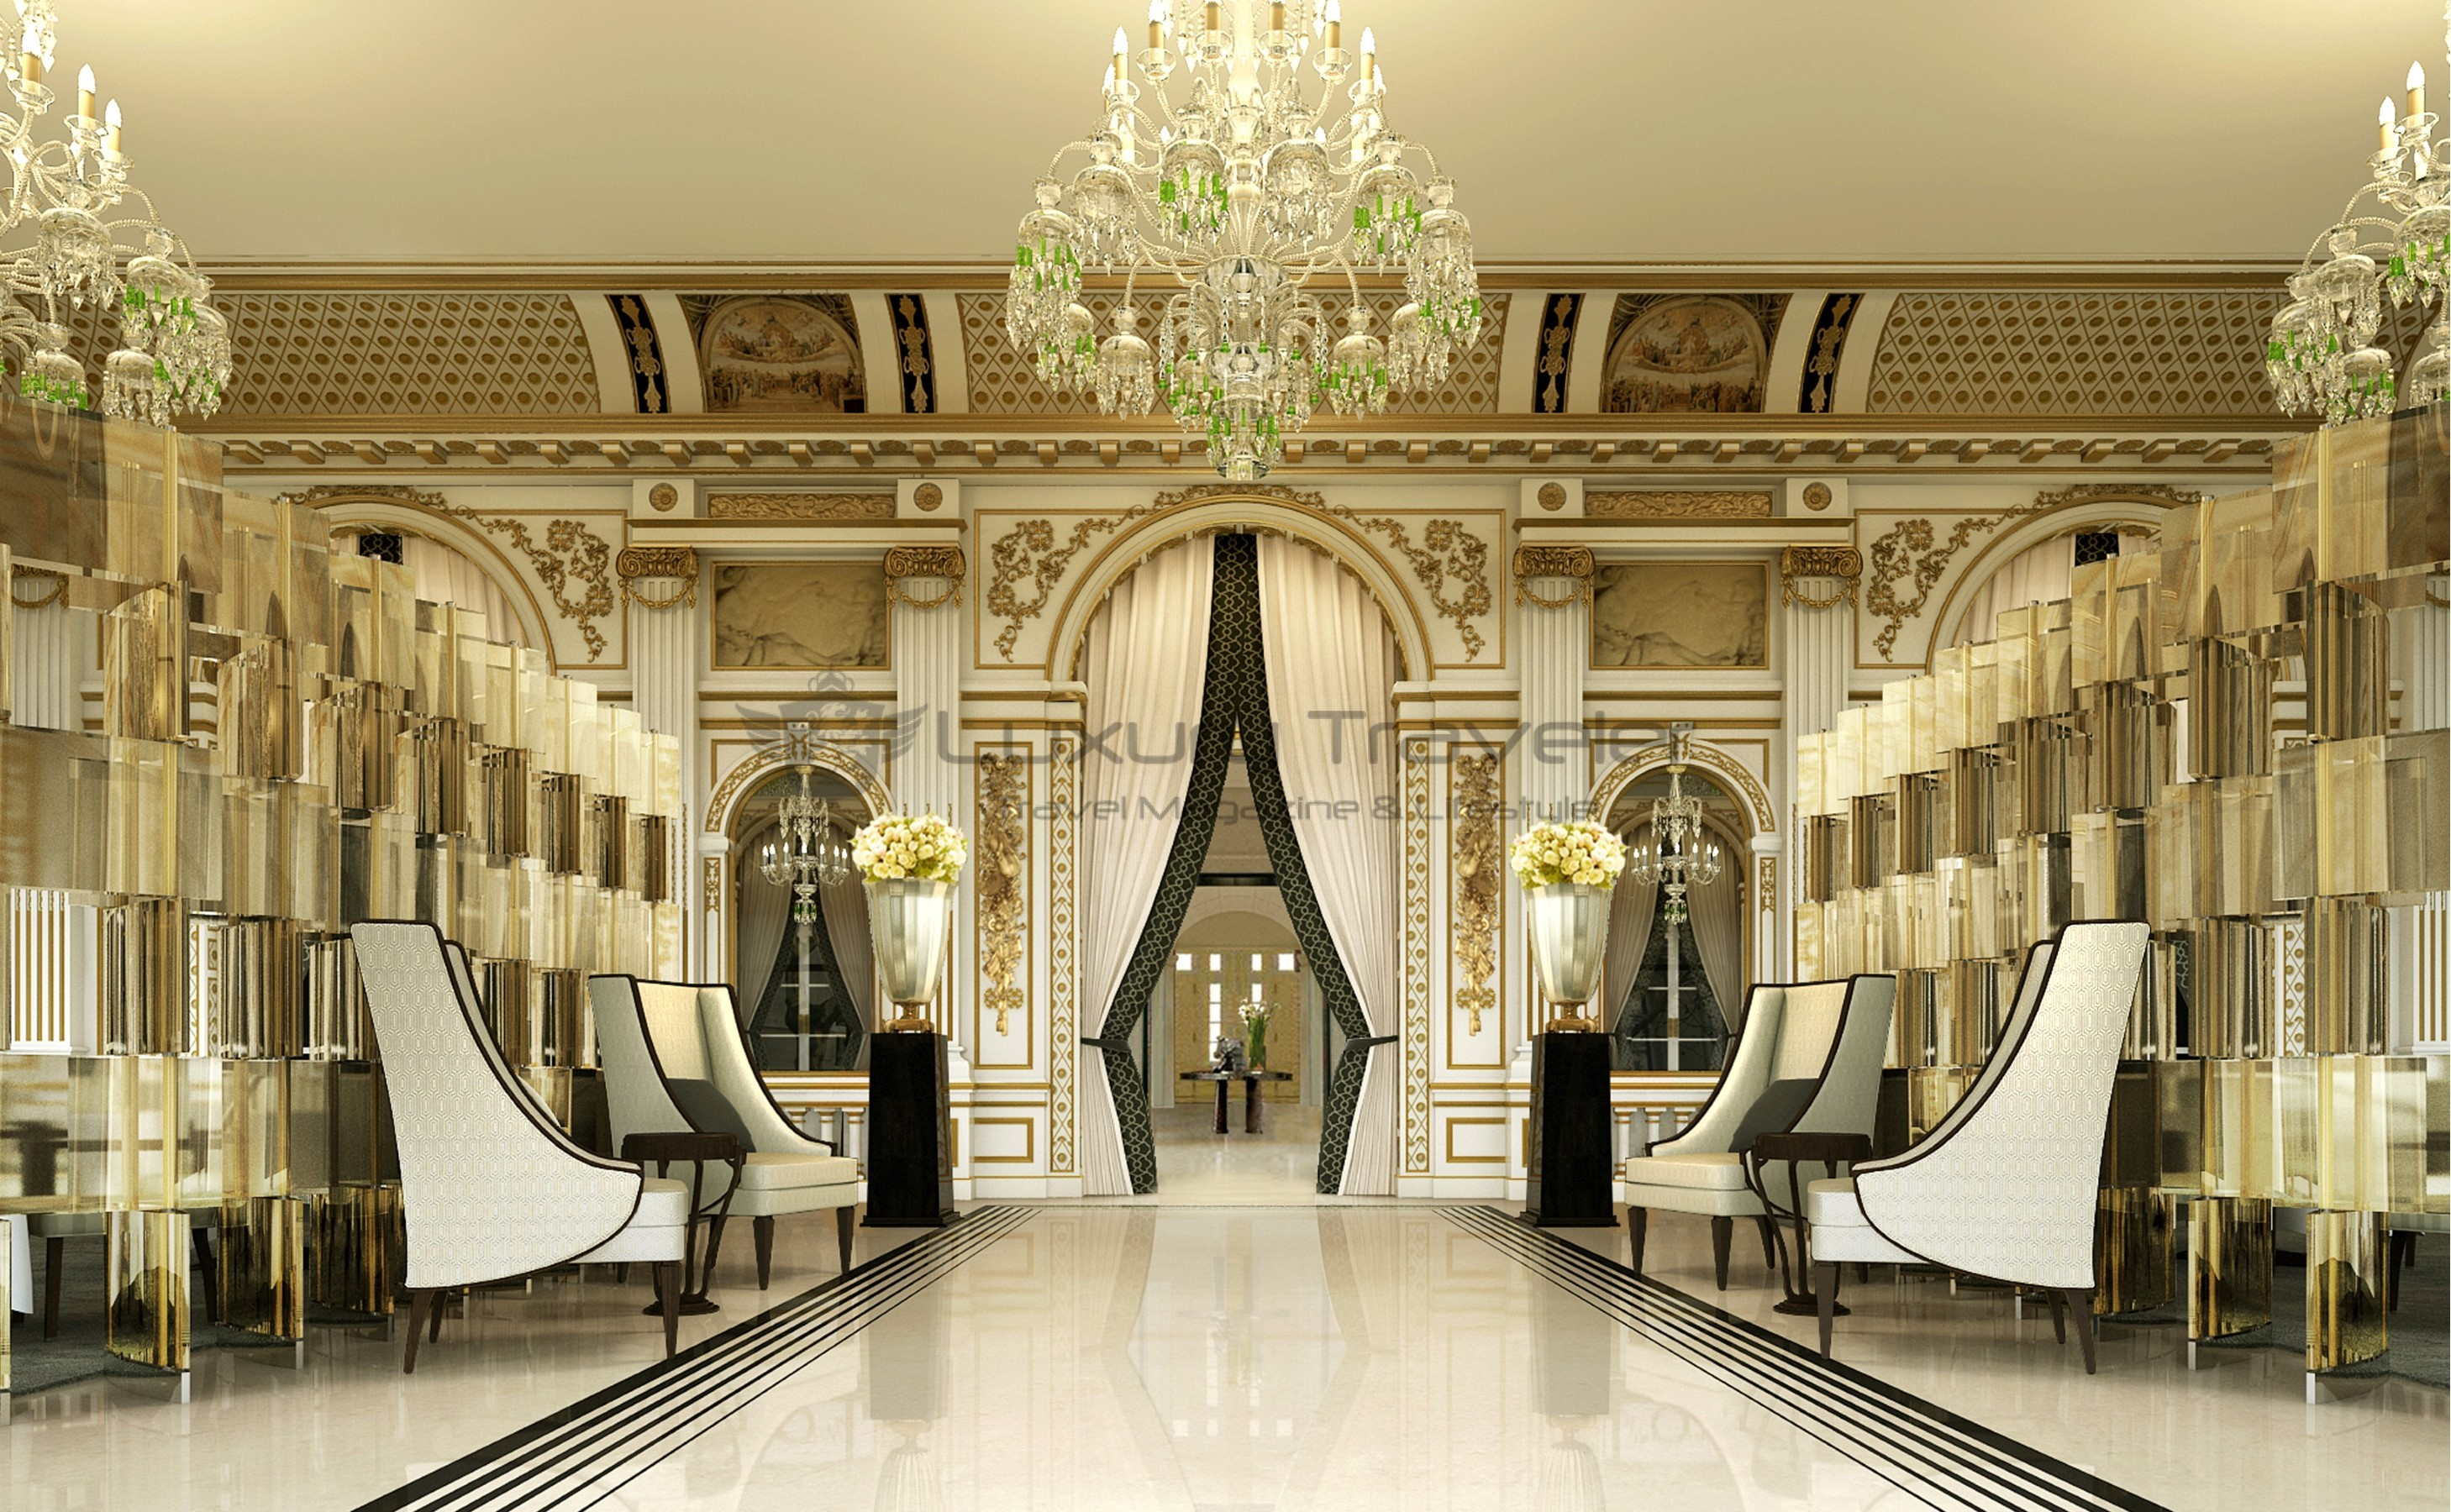 The peninsula luxury 5 star hotel paris luxury traveler for Hotel paris design